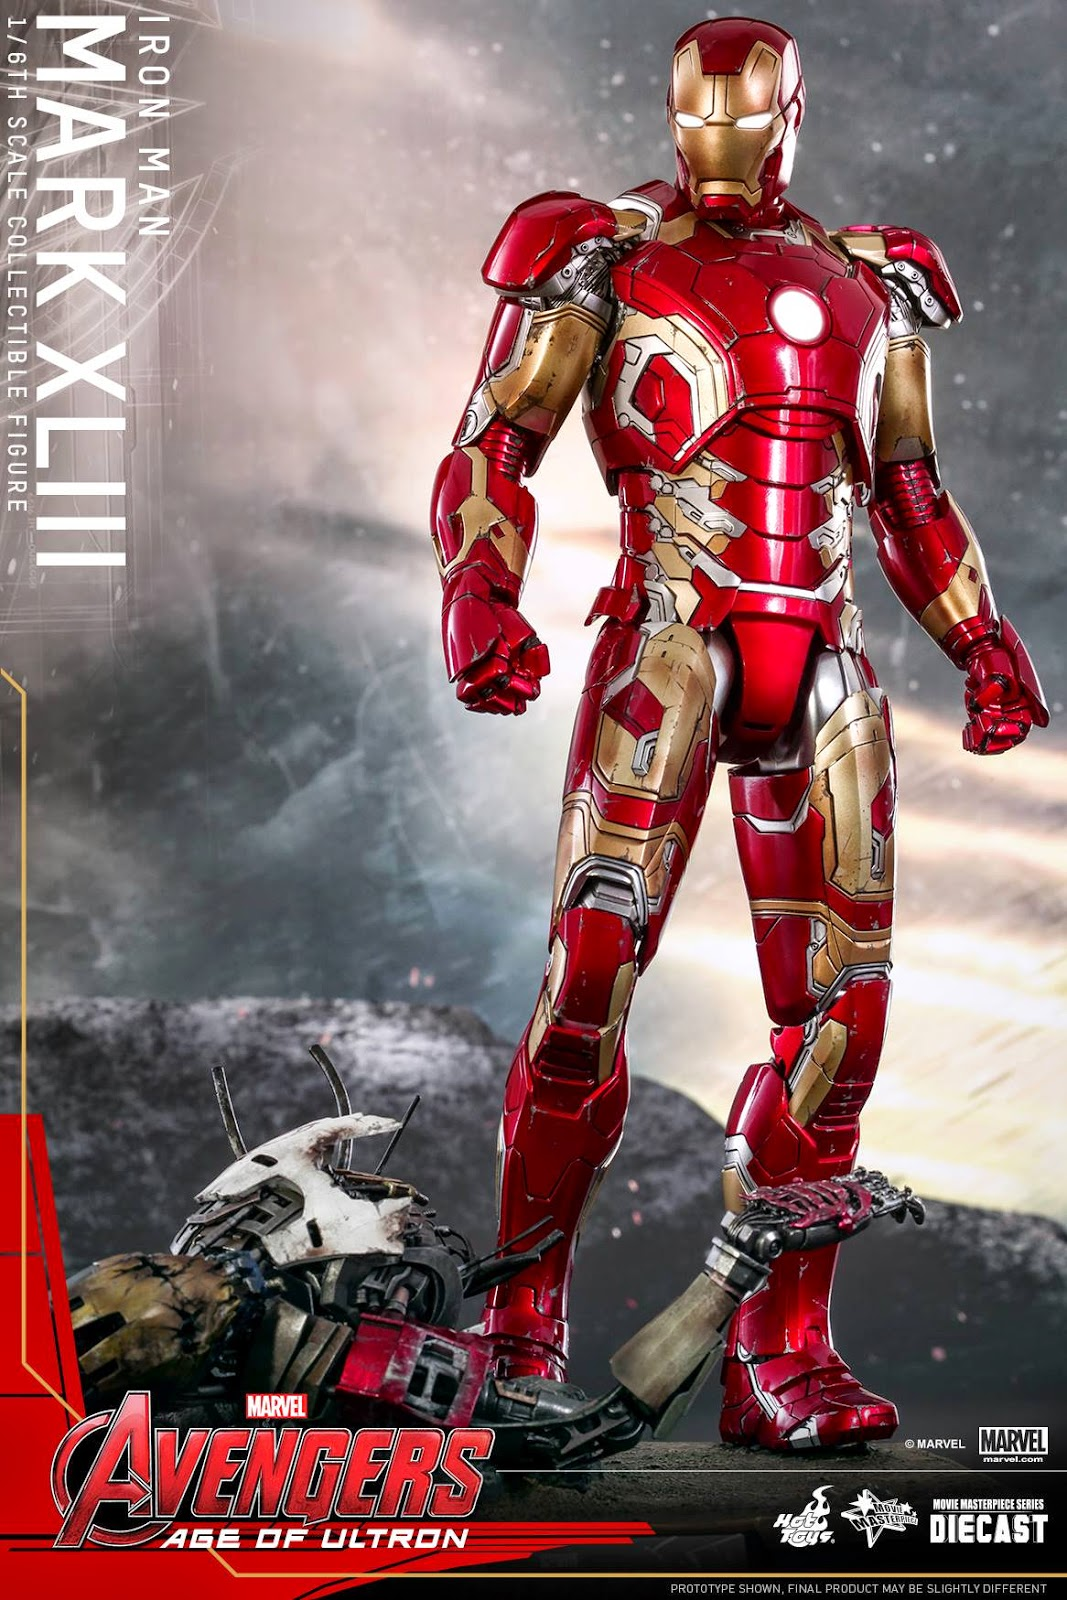 The avengers age of ultron iron man mark 43